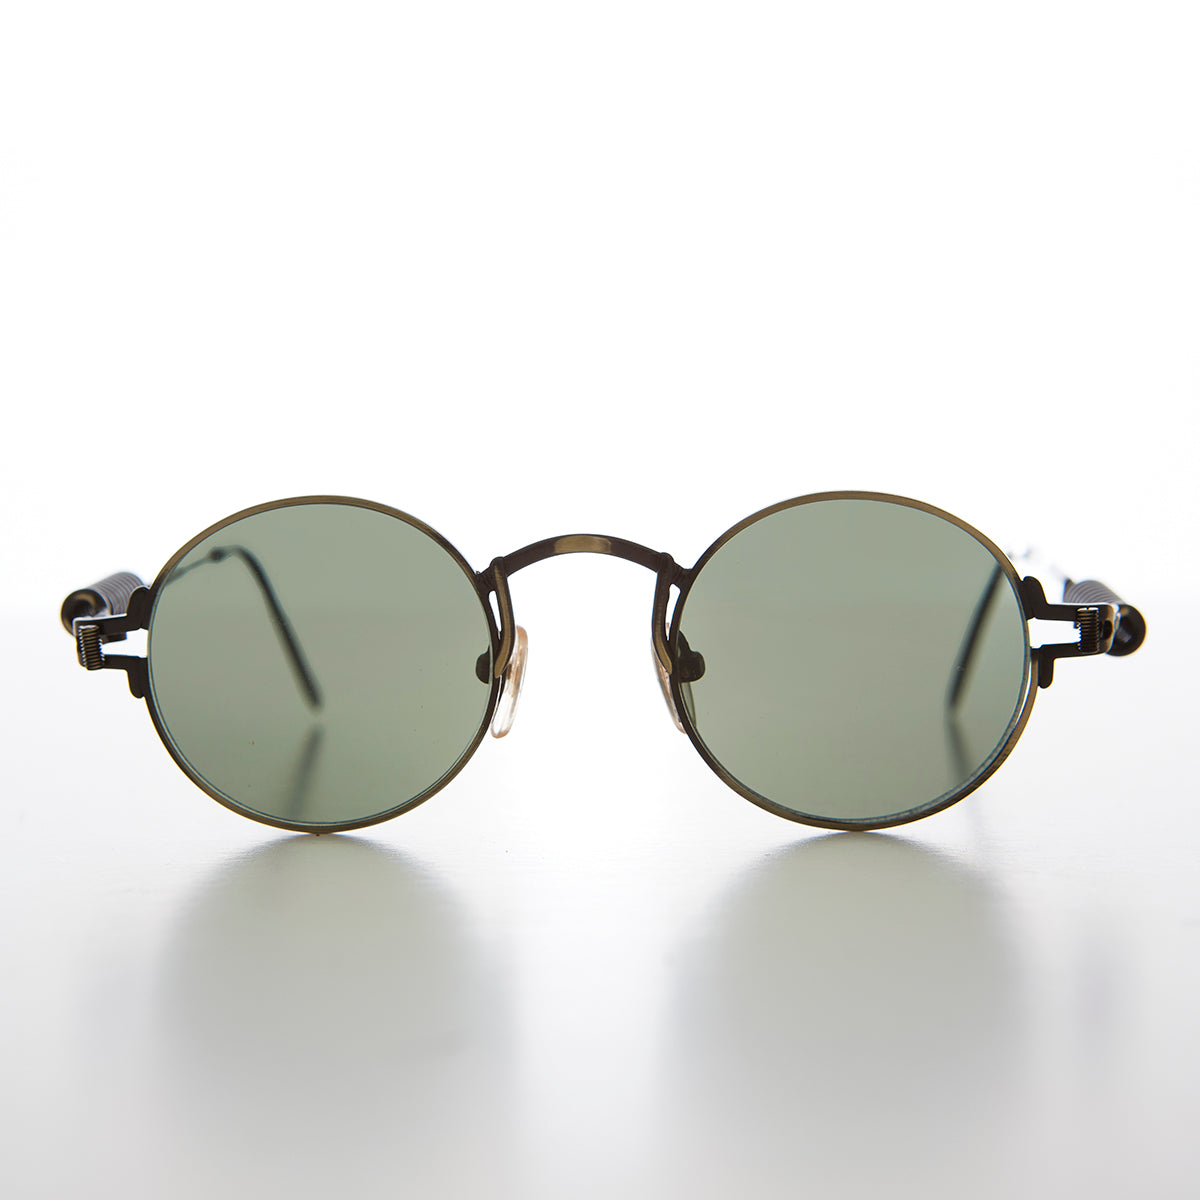 Coil Temple Round Metal Steampunk Vintage Sunglass